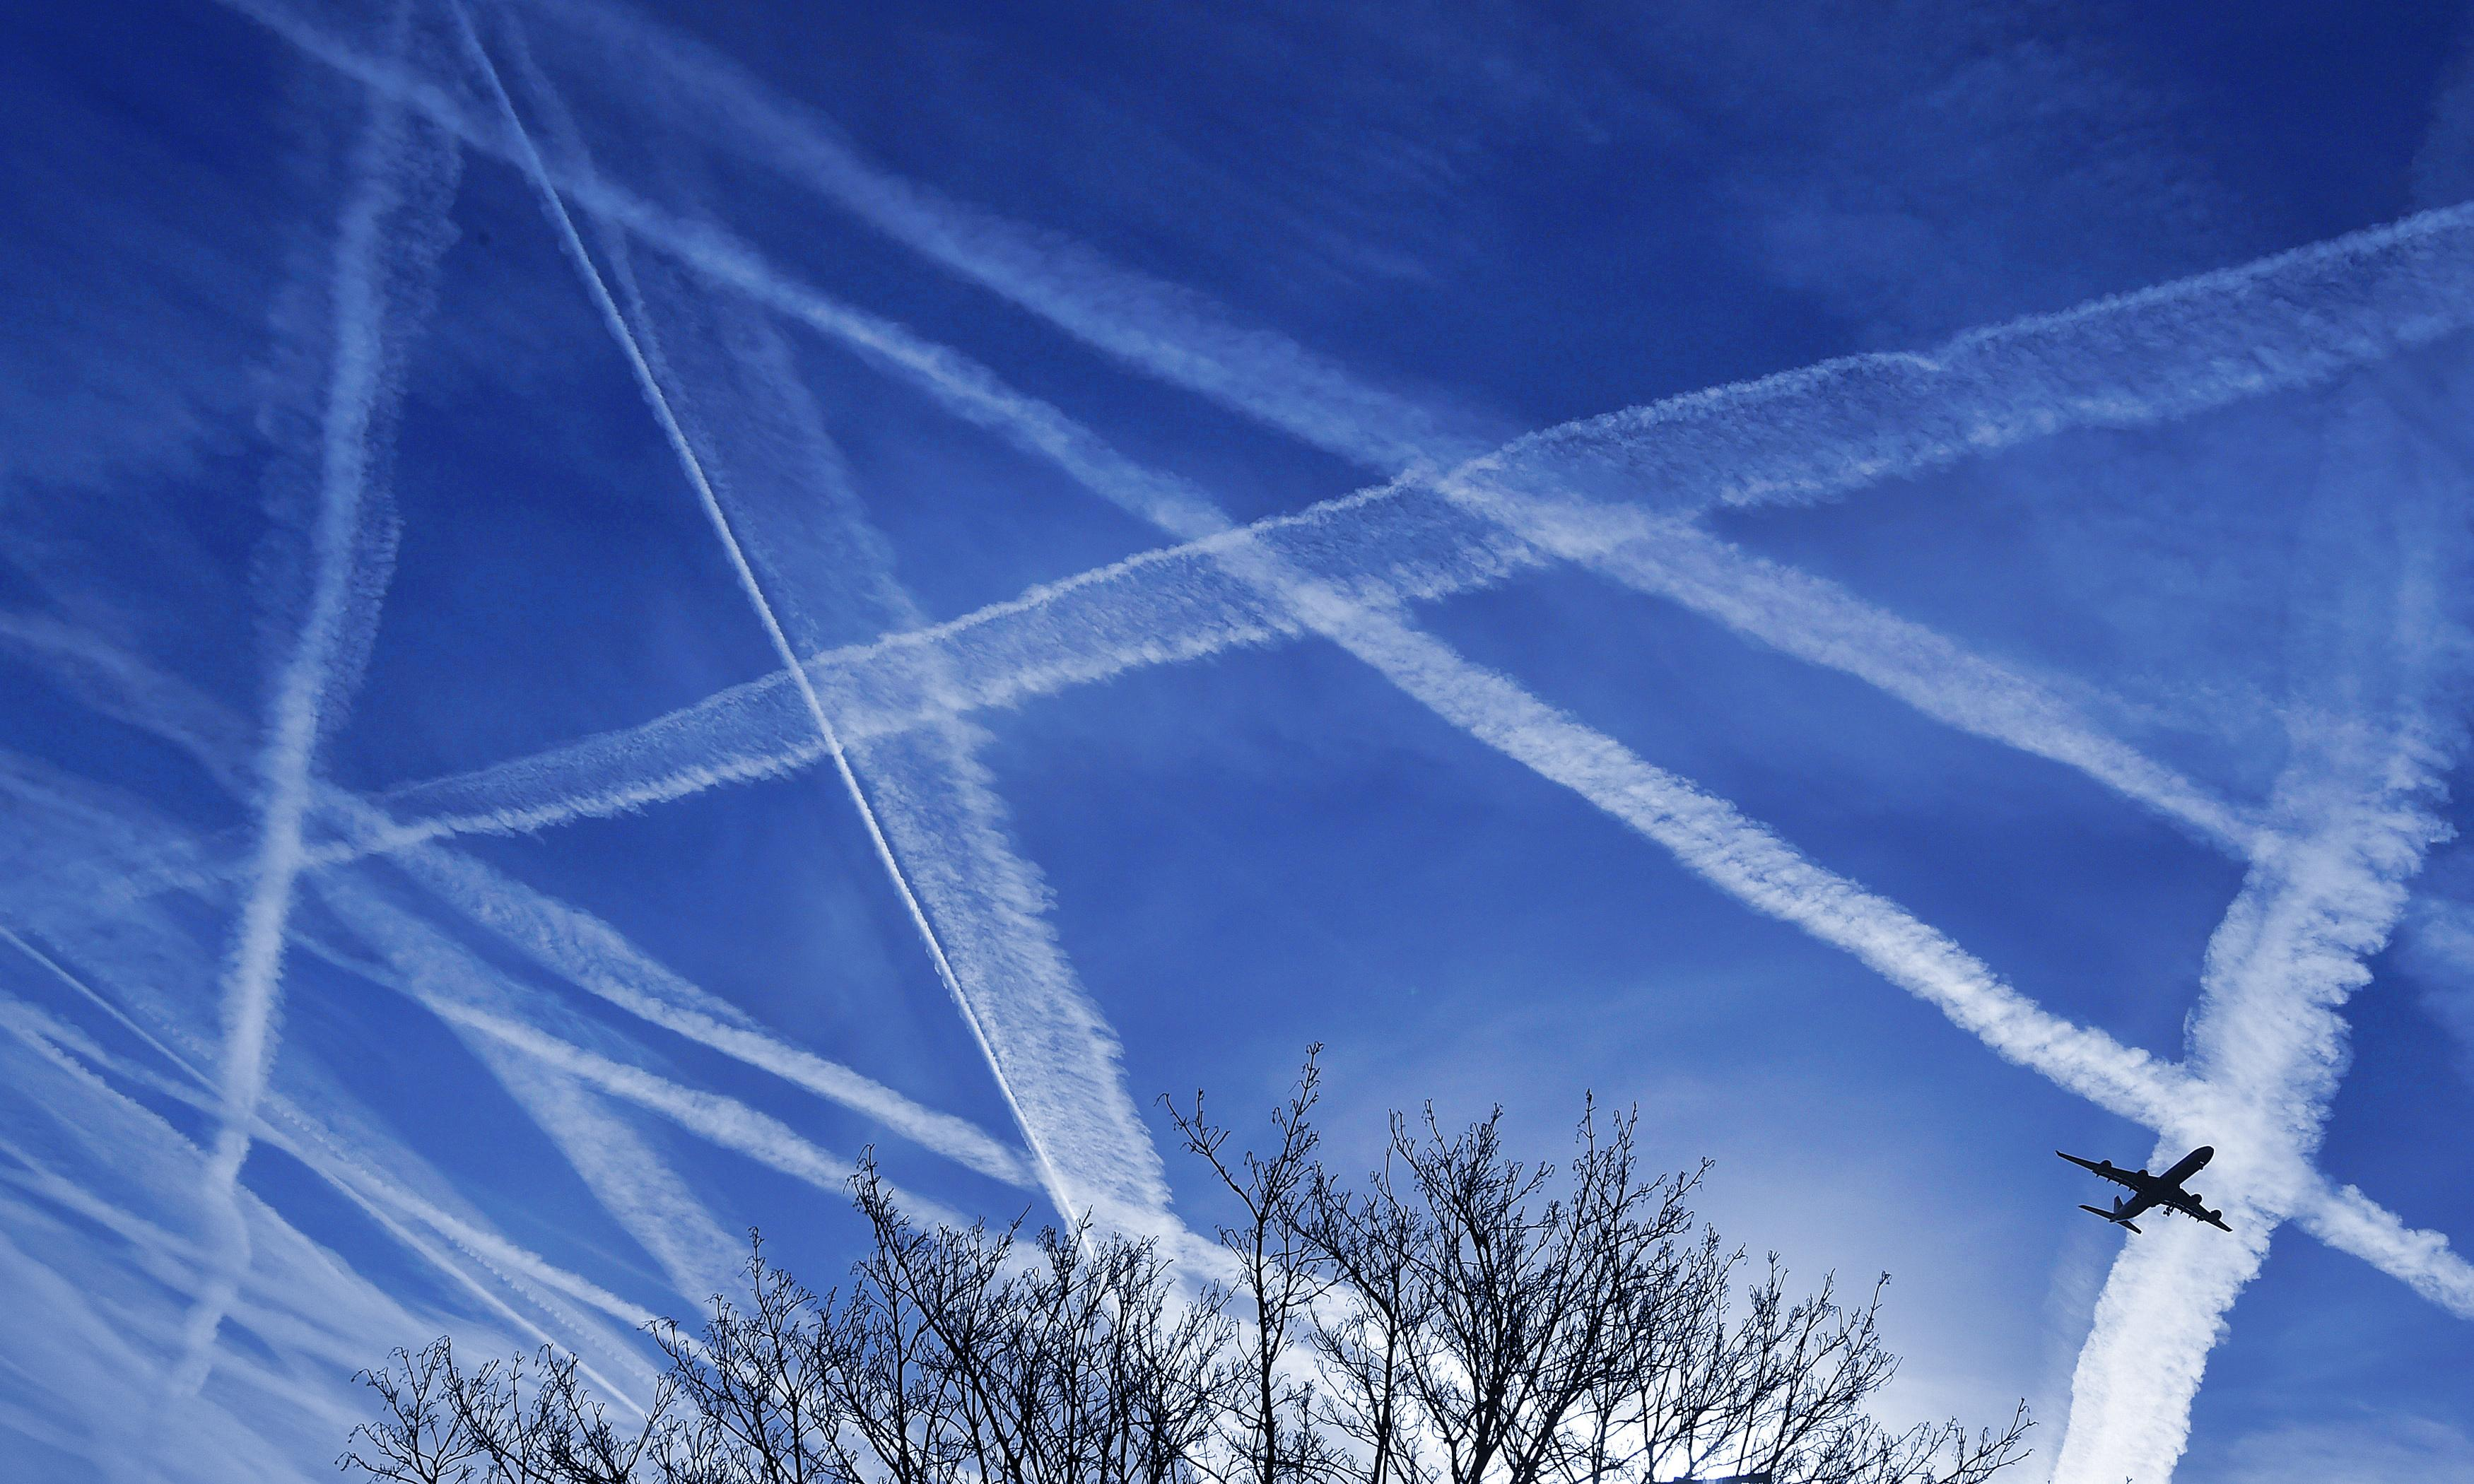 Weatherwatch: The downs and ups of plane contrails